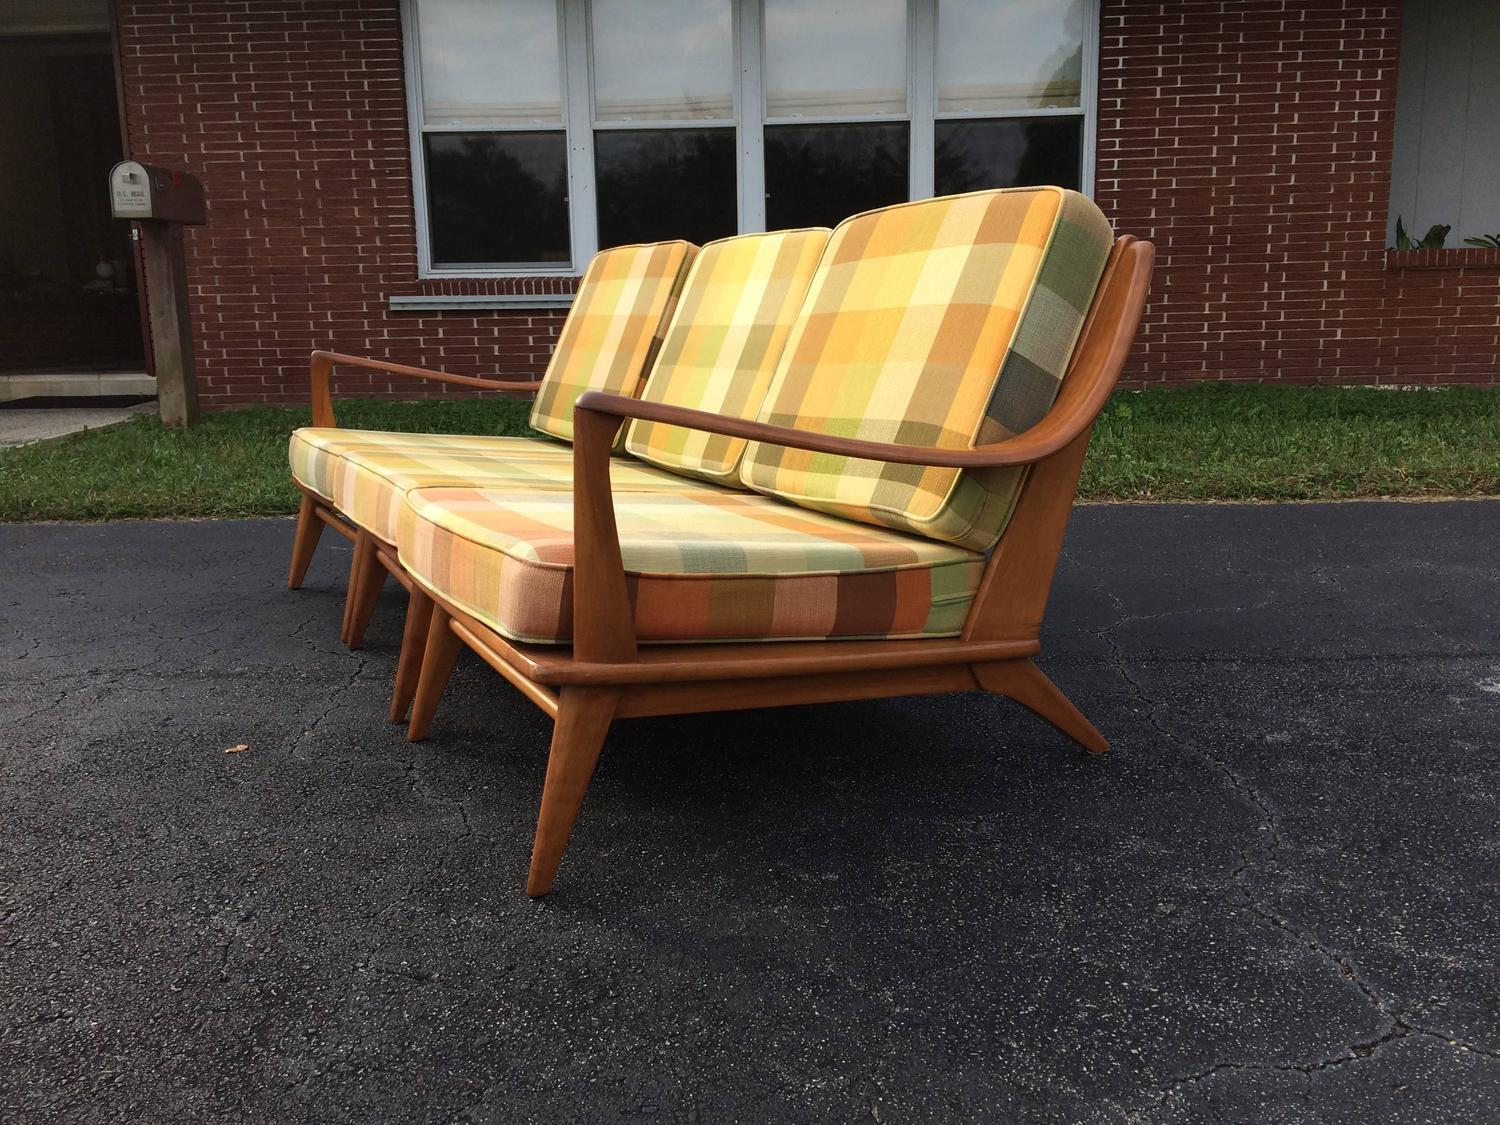 Cool heywood wakefield sofa usa 1950s for sale at 1stdibs for Cool couches for sale